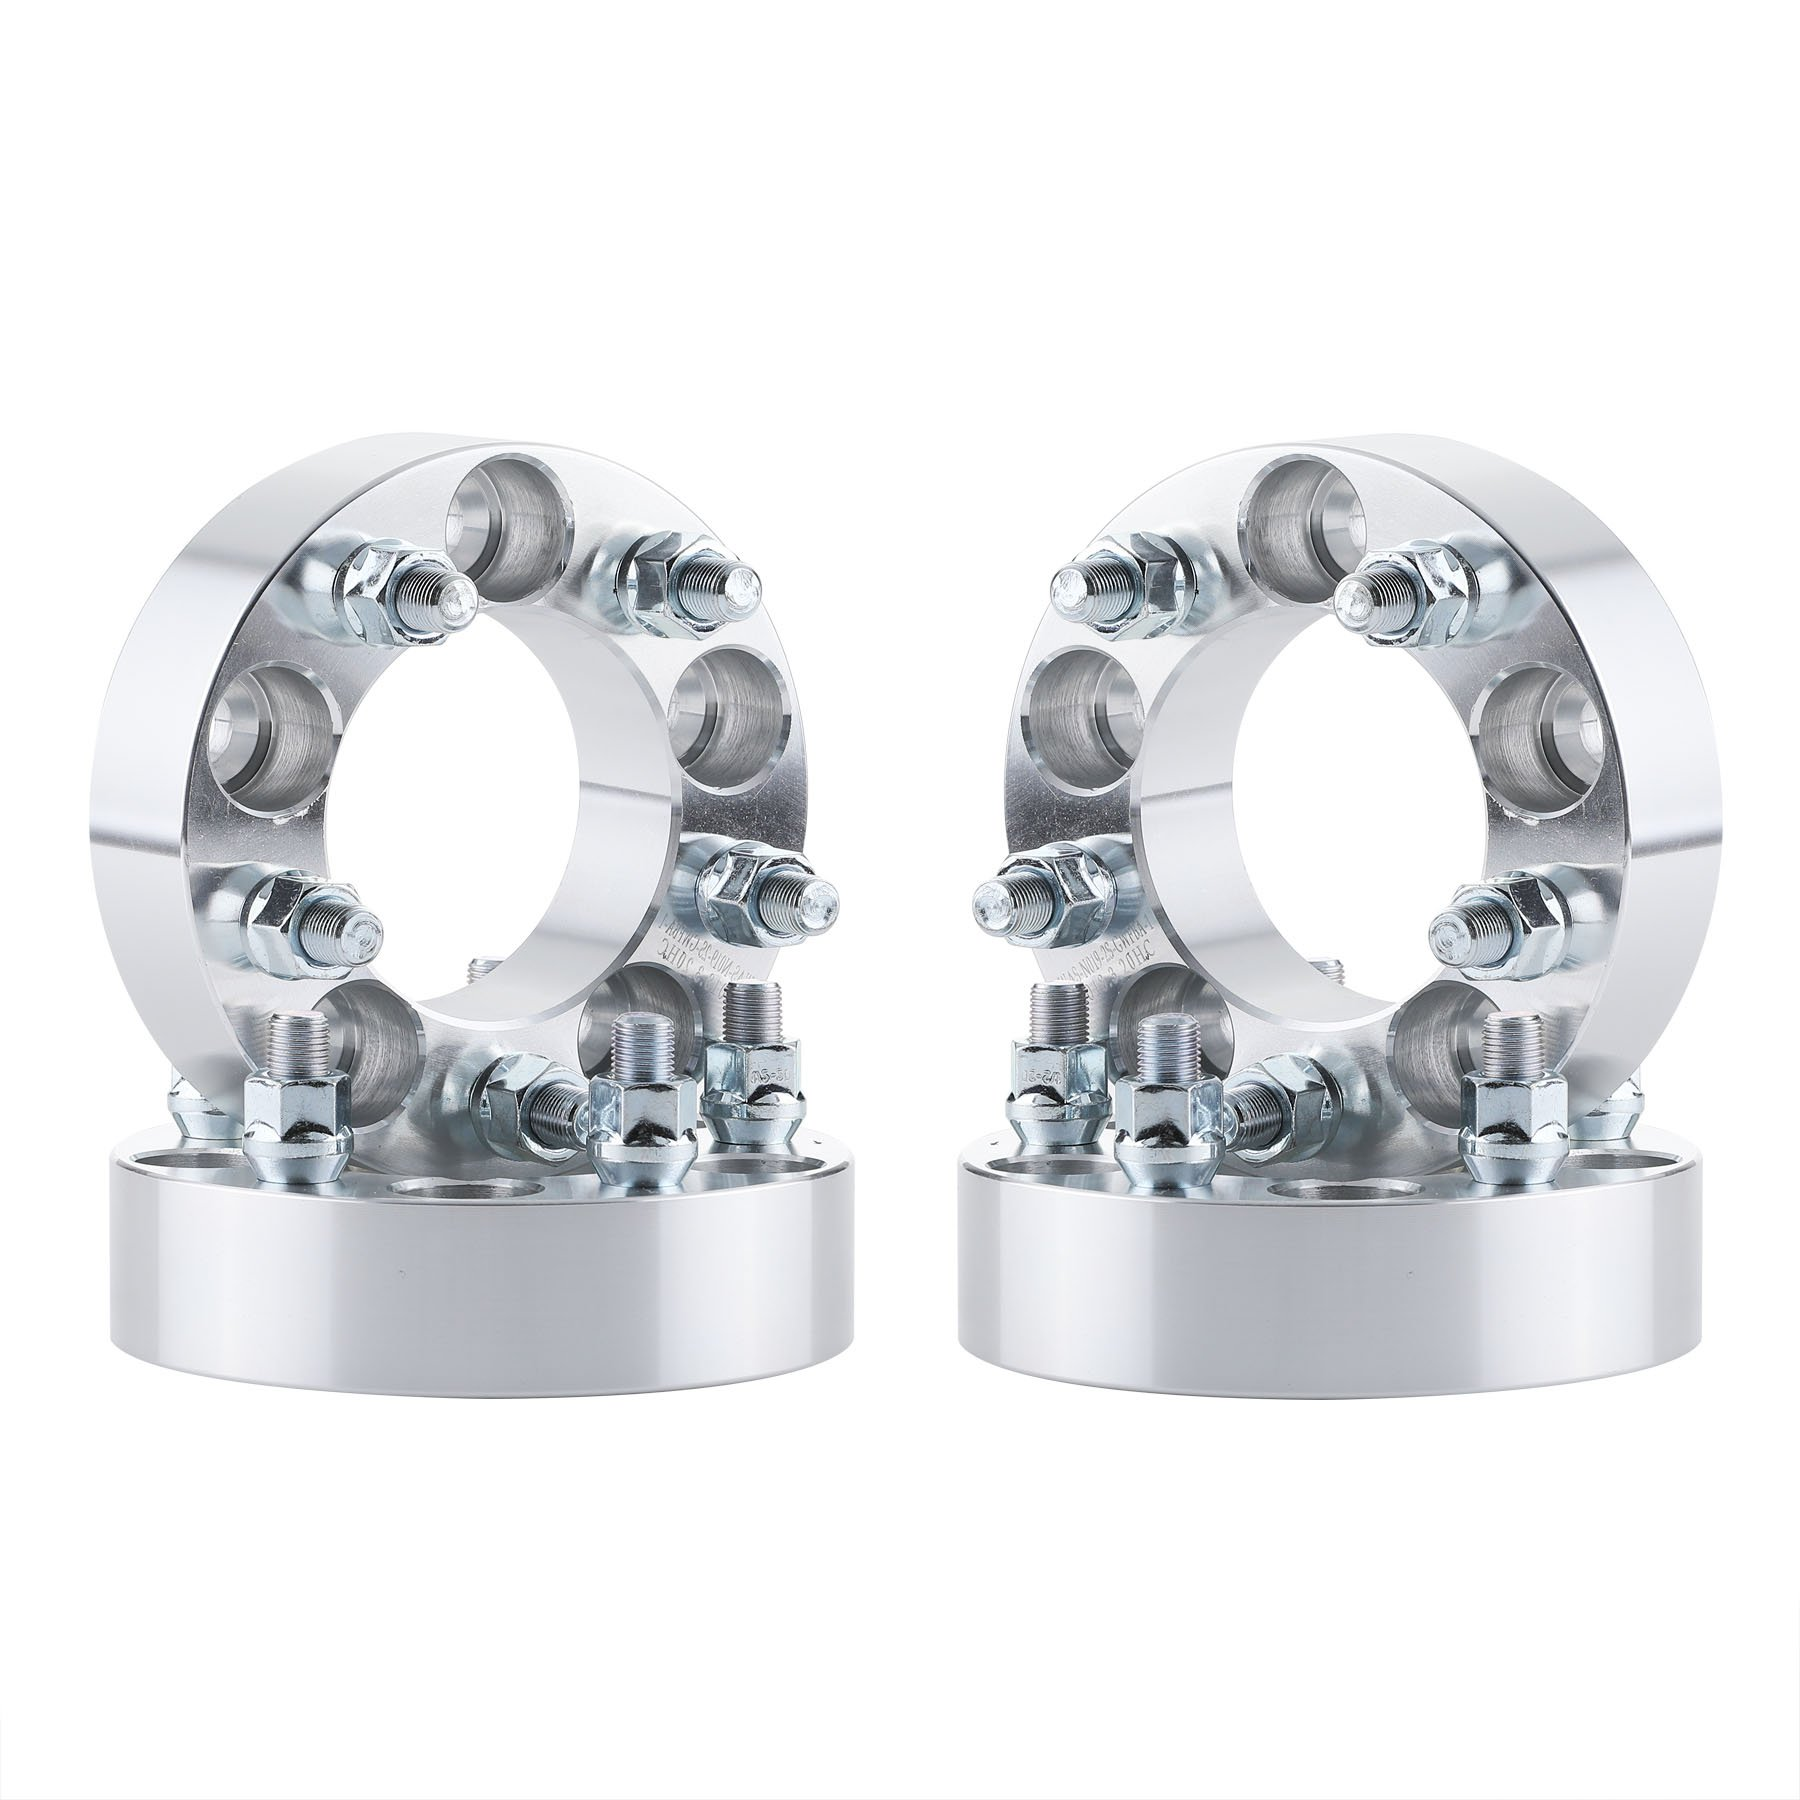 OrionMotorTech 5x4.5 Wheel Spacers 1.5 inches with 1/2-20 Studs, Compatible with Ford Ranger Explorer Mustang, Jeep Wrangler TJ Liberty KJ KK Grand Cherokee ZJ, 4pcs by OrionMotorTech